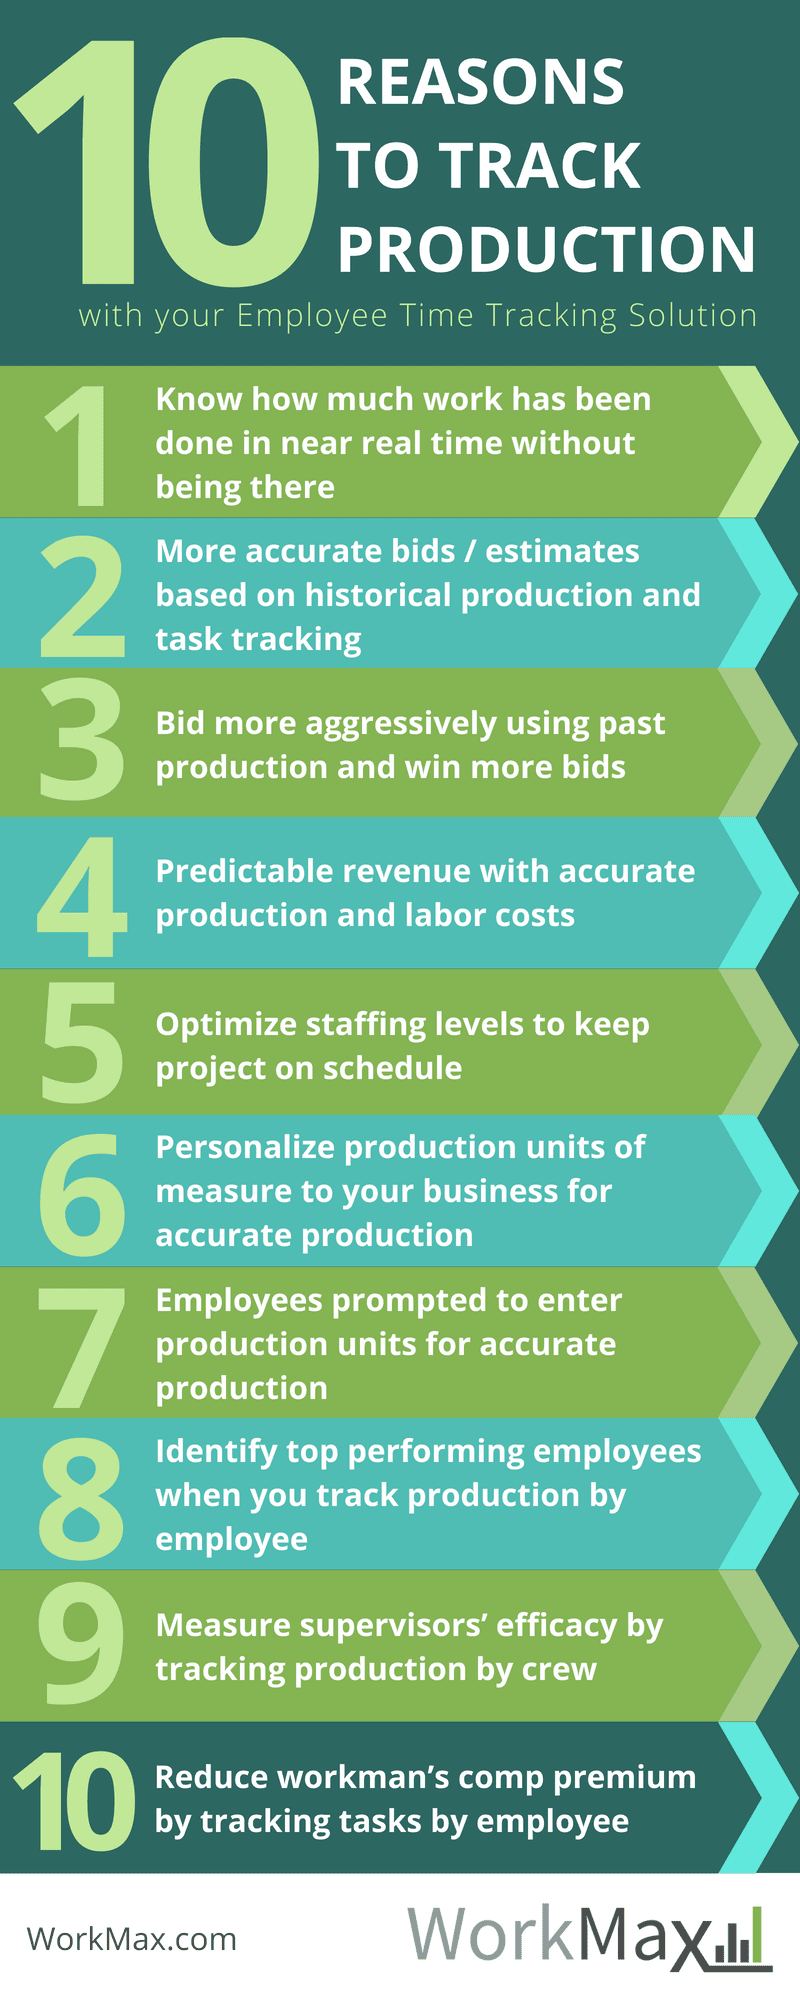 INFOGRAPHIC 10 REASONS TO TRACK PRODUCTION IN YOUR EMPLOYEE TIME TRACKING